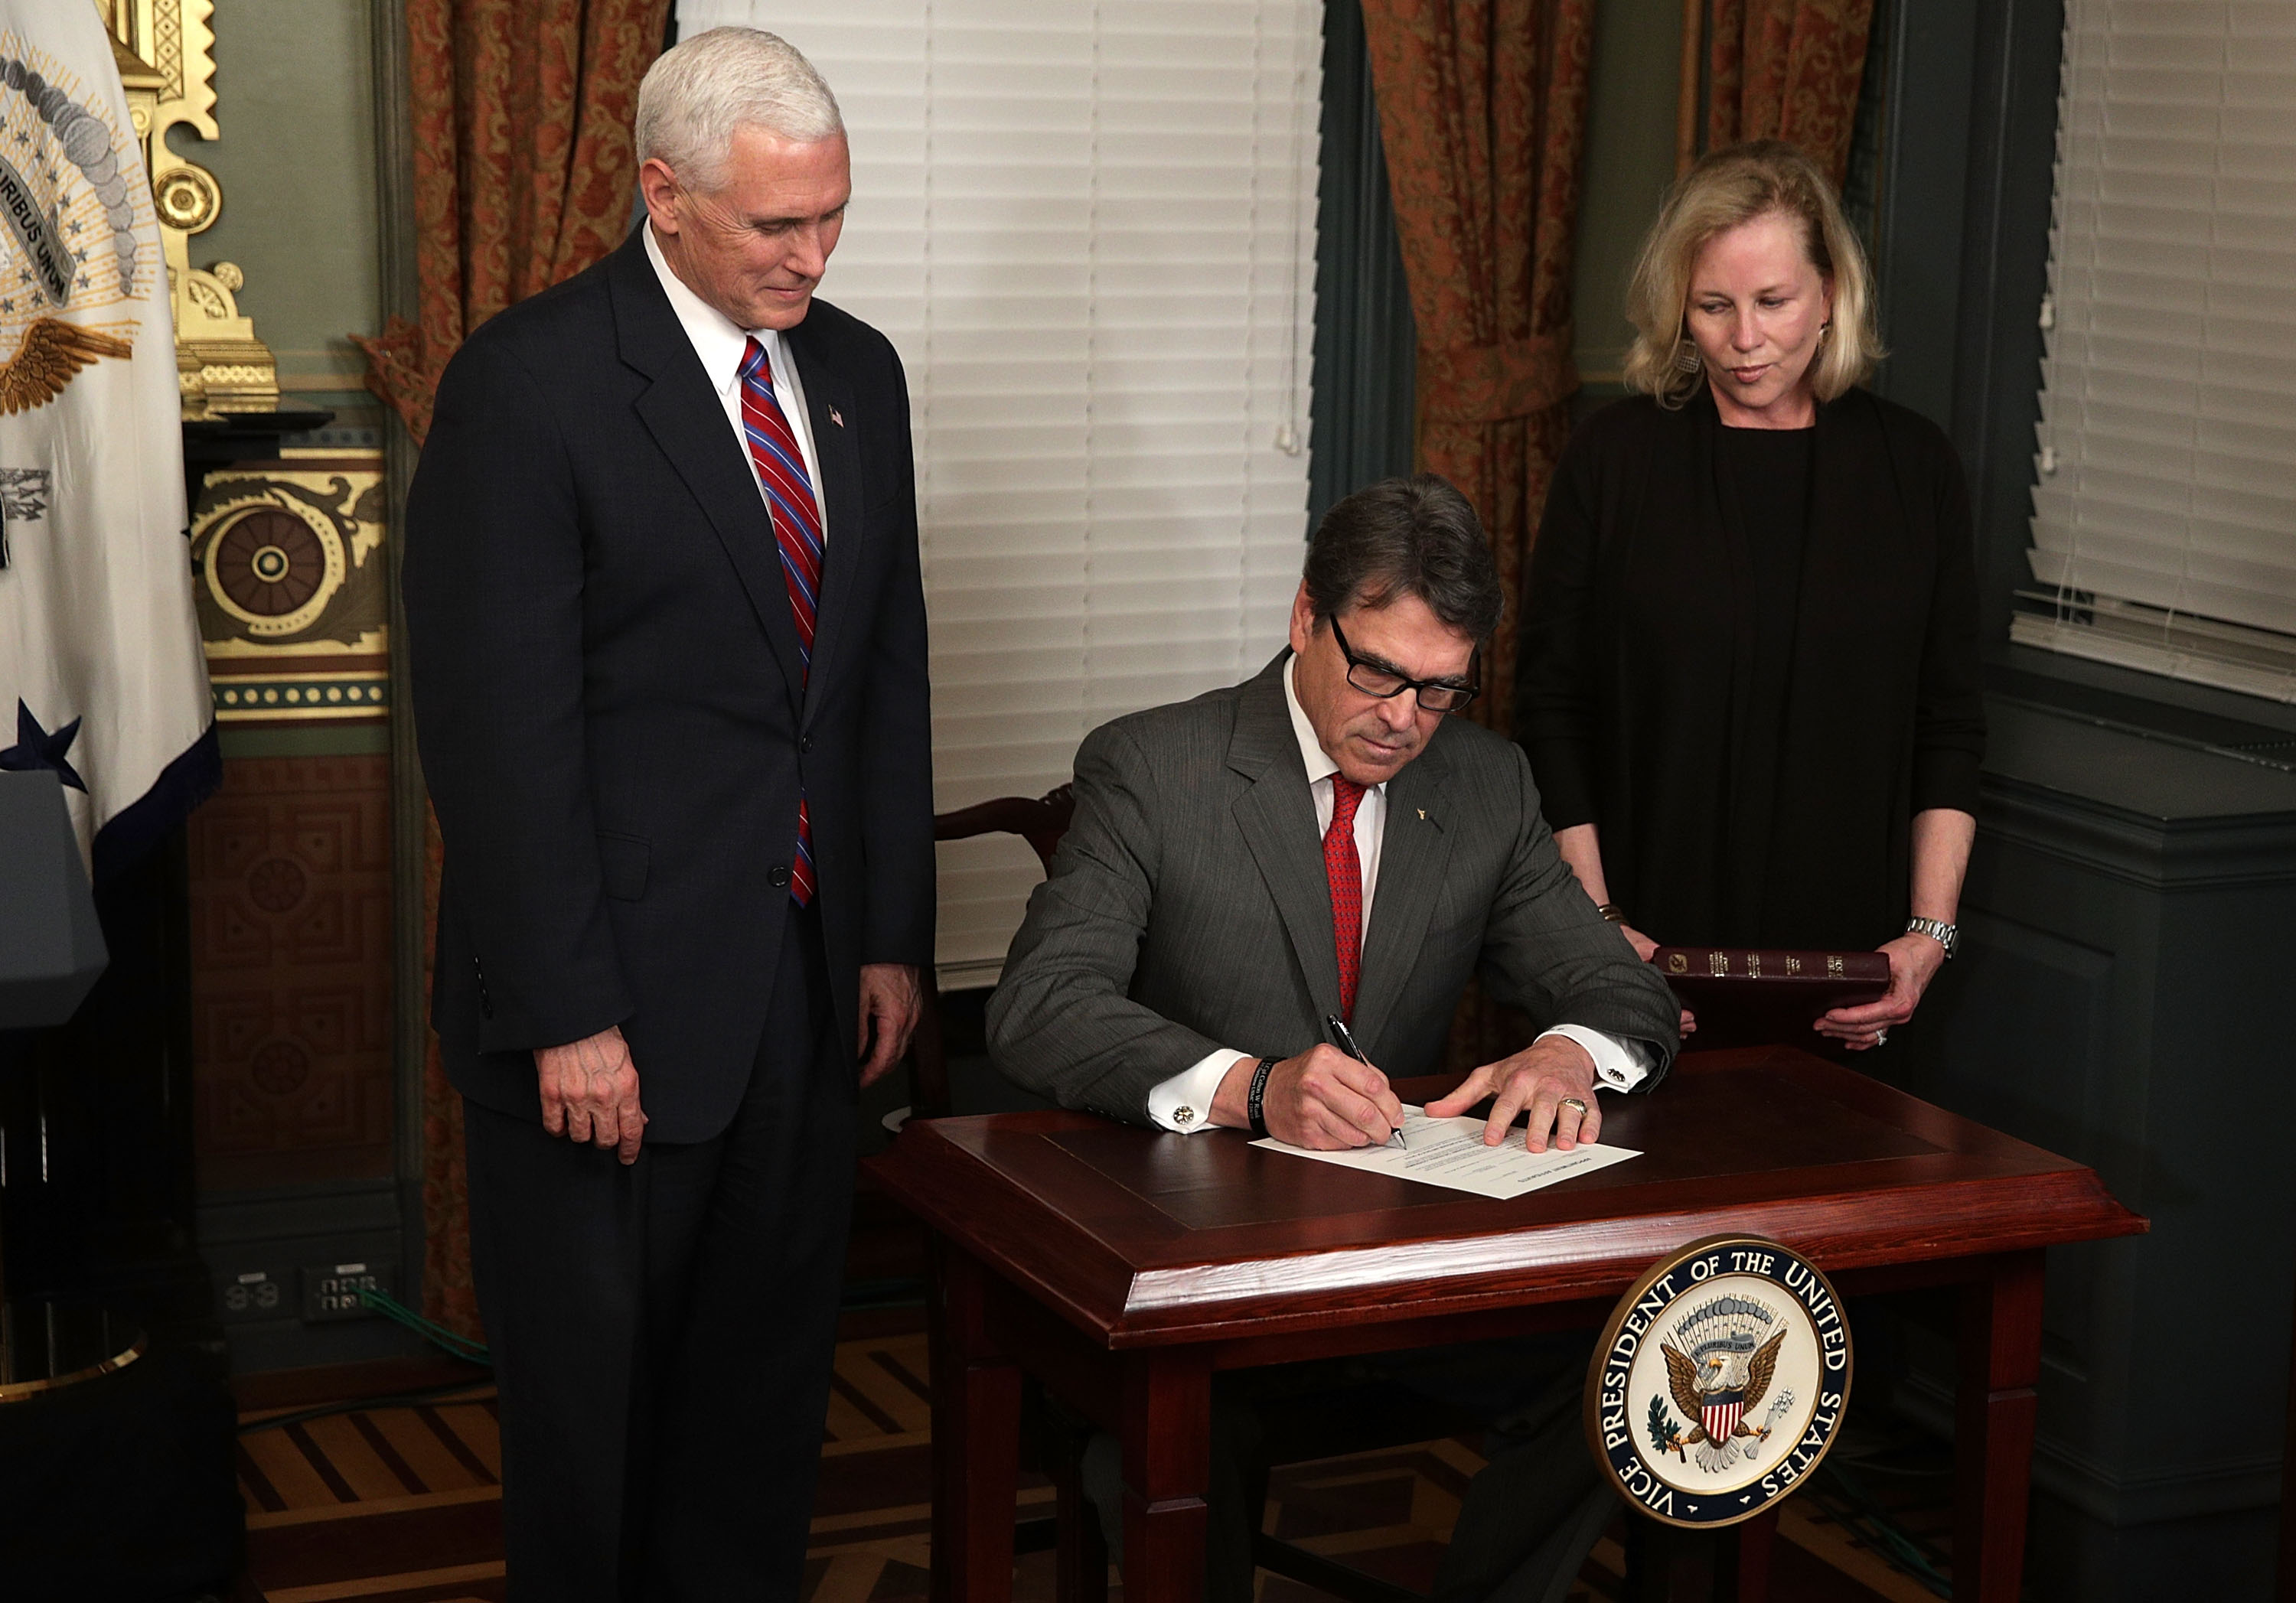 Vice President Pence Swears In Rick Perry As Secretary Of Energy